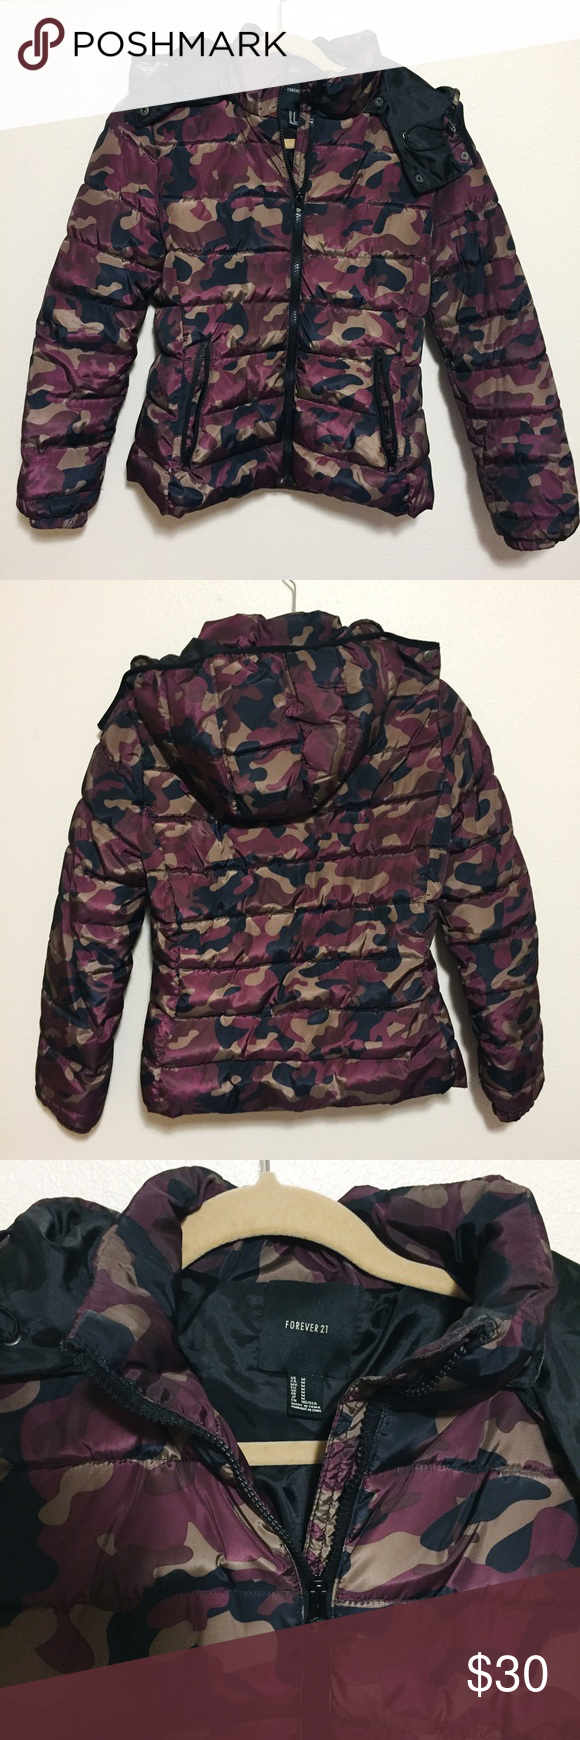 81d41228cb64f Forever 21 puffer jacket burgundy camo Burgundy camo puffer jacket. Brand  new without tag. Hood can be removed. Forever 21 Jackets & Coats Puffers